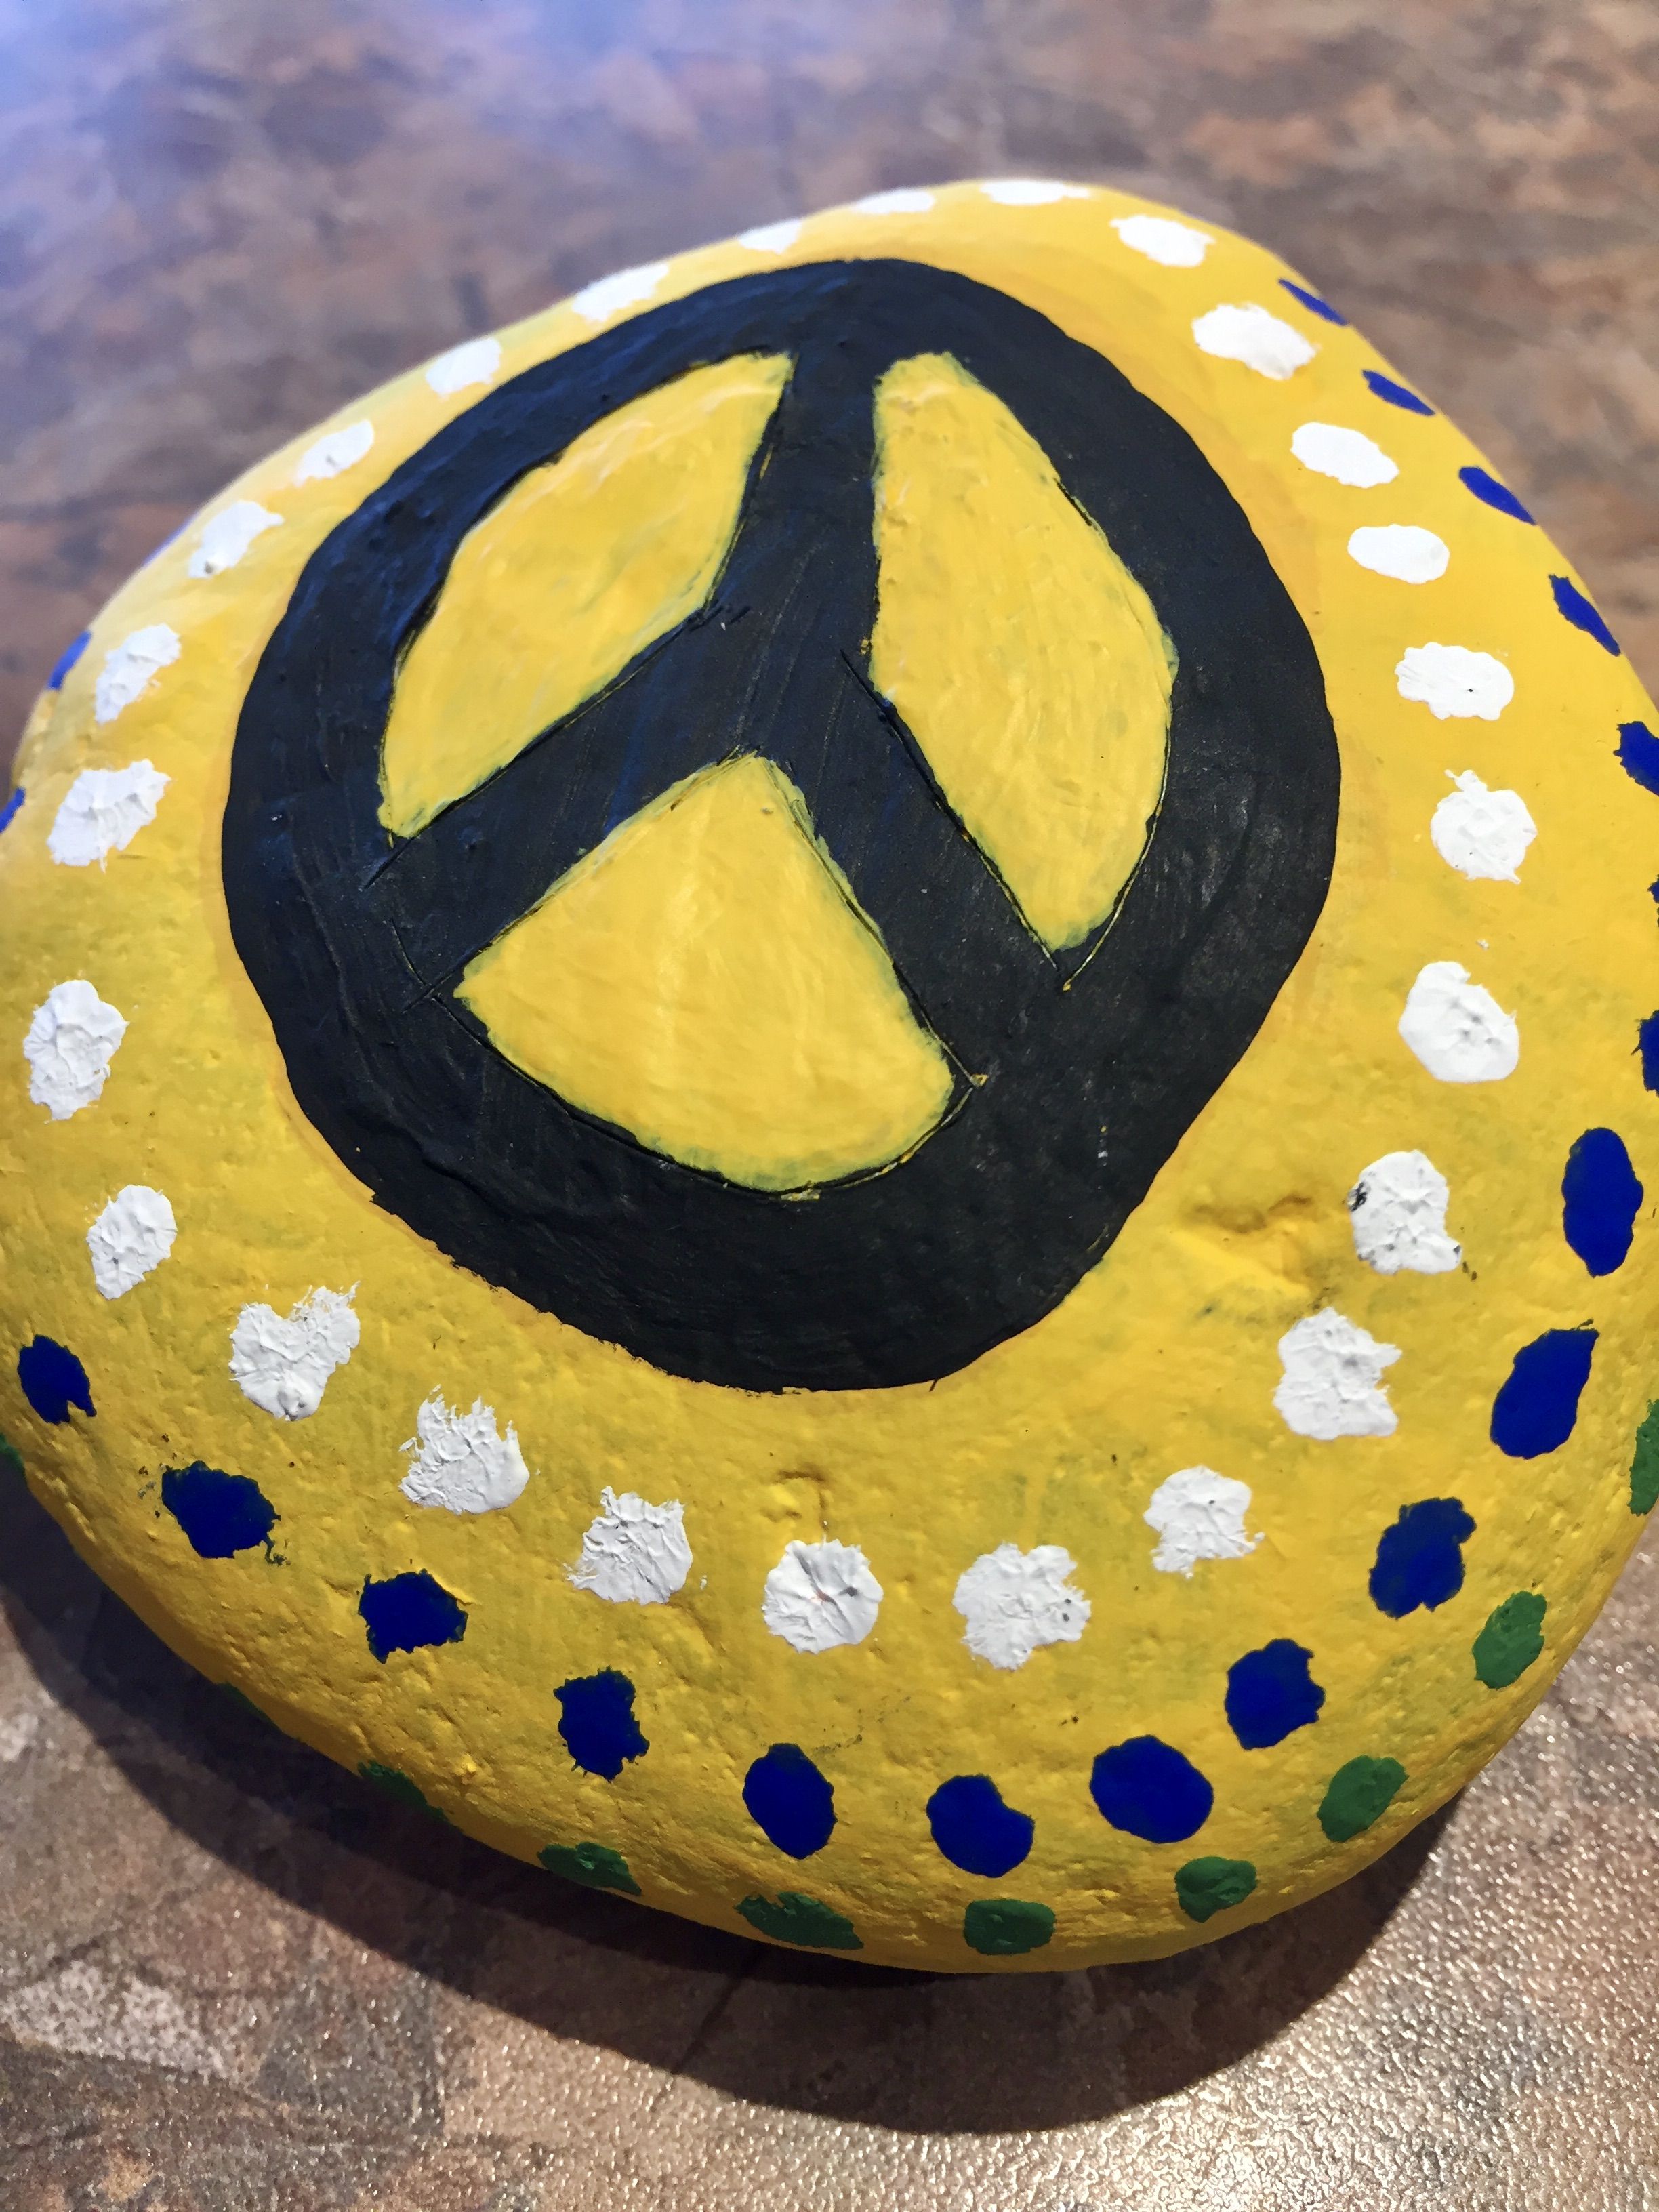 May, 2020 - Campbell River, Vancouver Island, British Columbia - My first painted rock!!